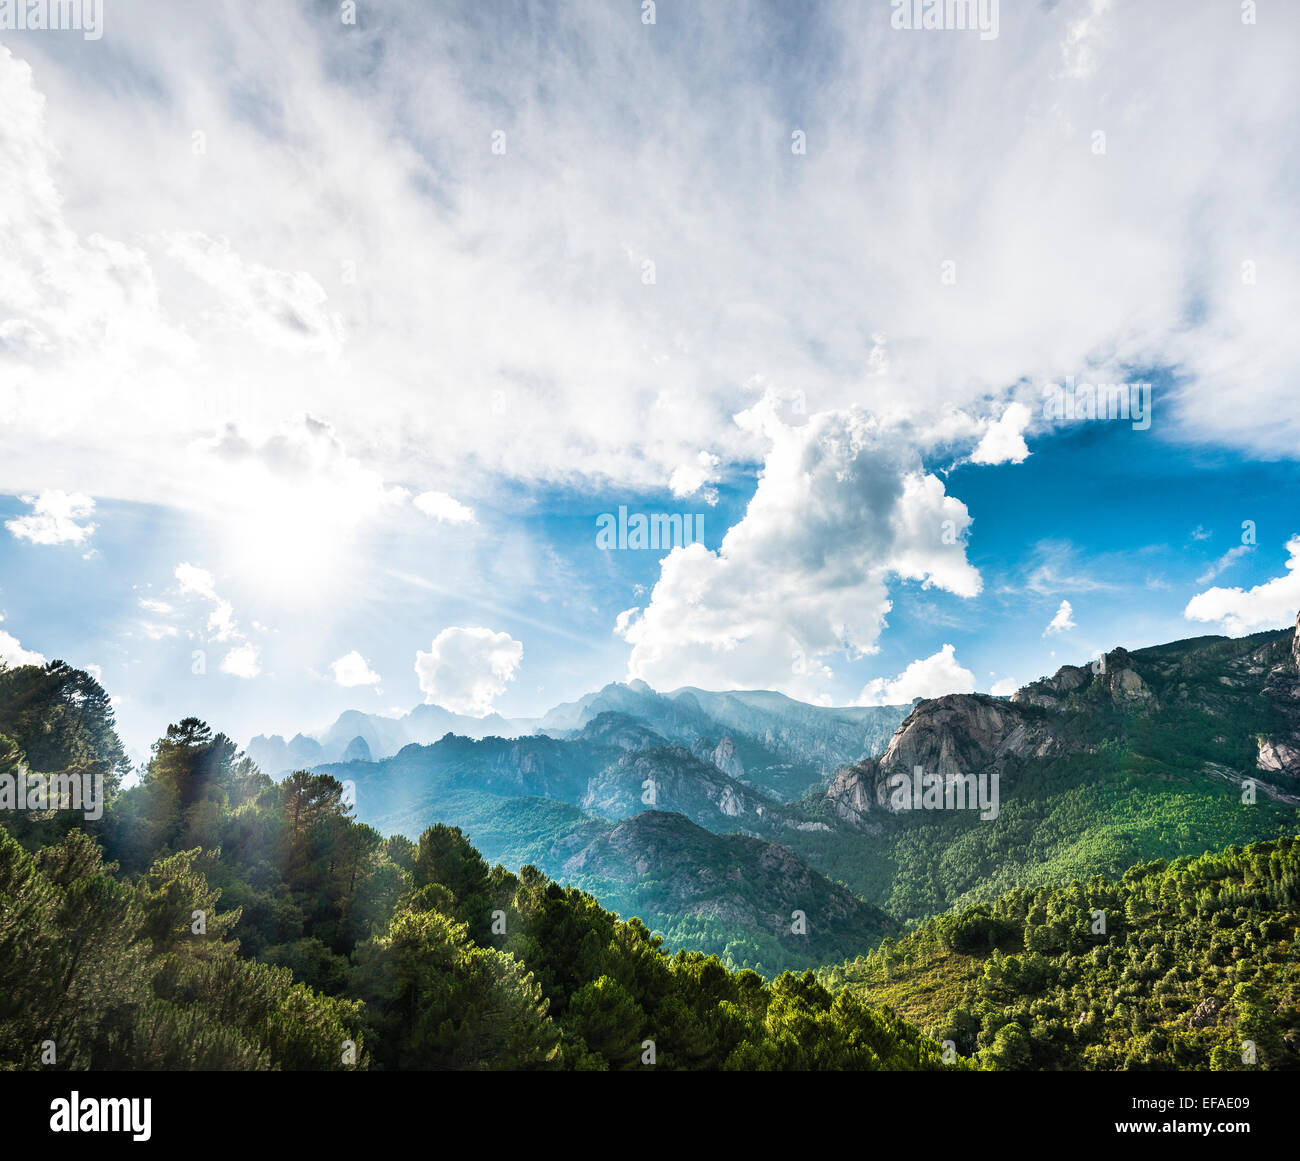 Rocky landscape with pines and cloudy sky, Bavella, Bavella Massif, Corsica, France - Stock Image